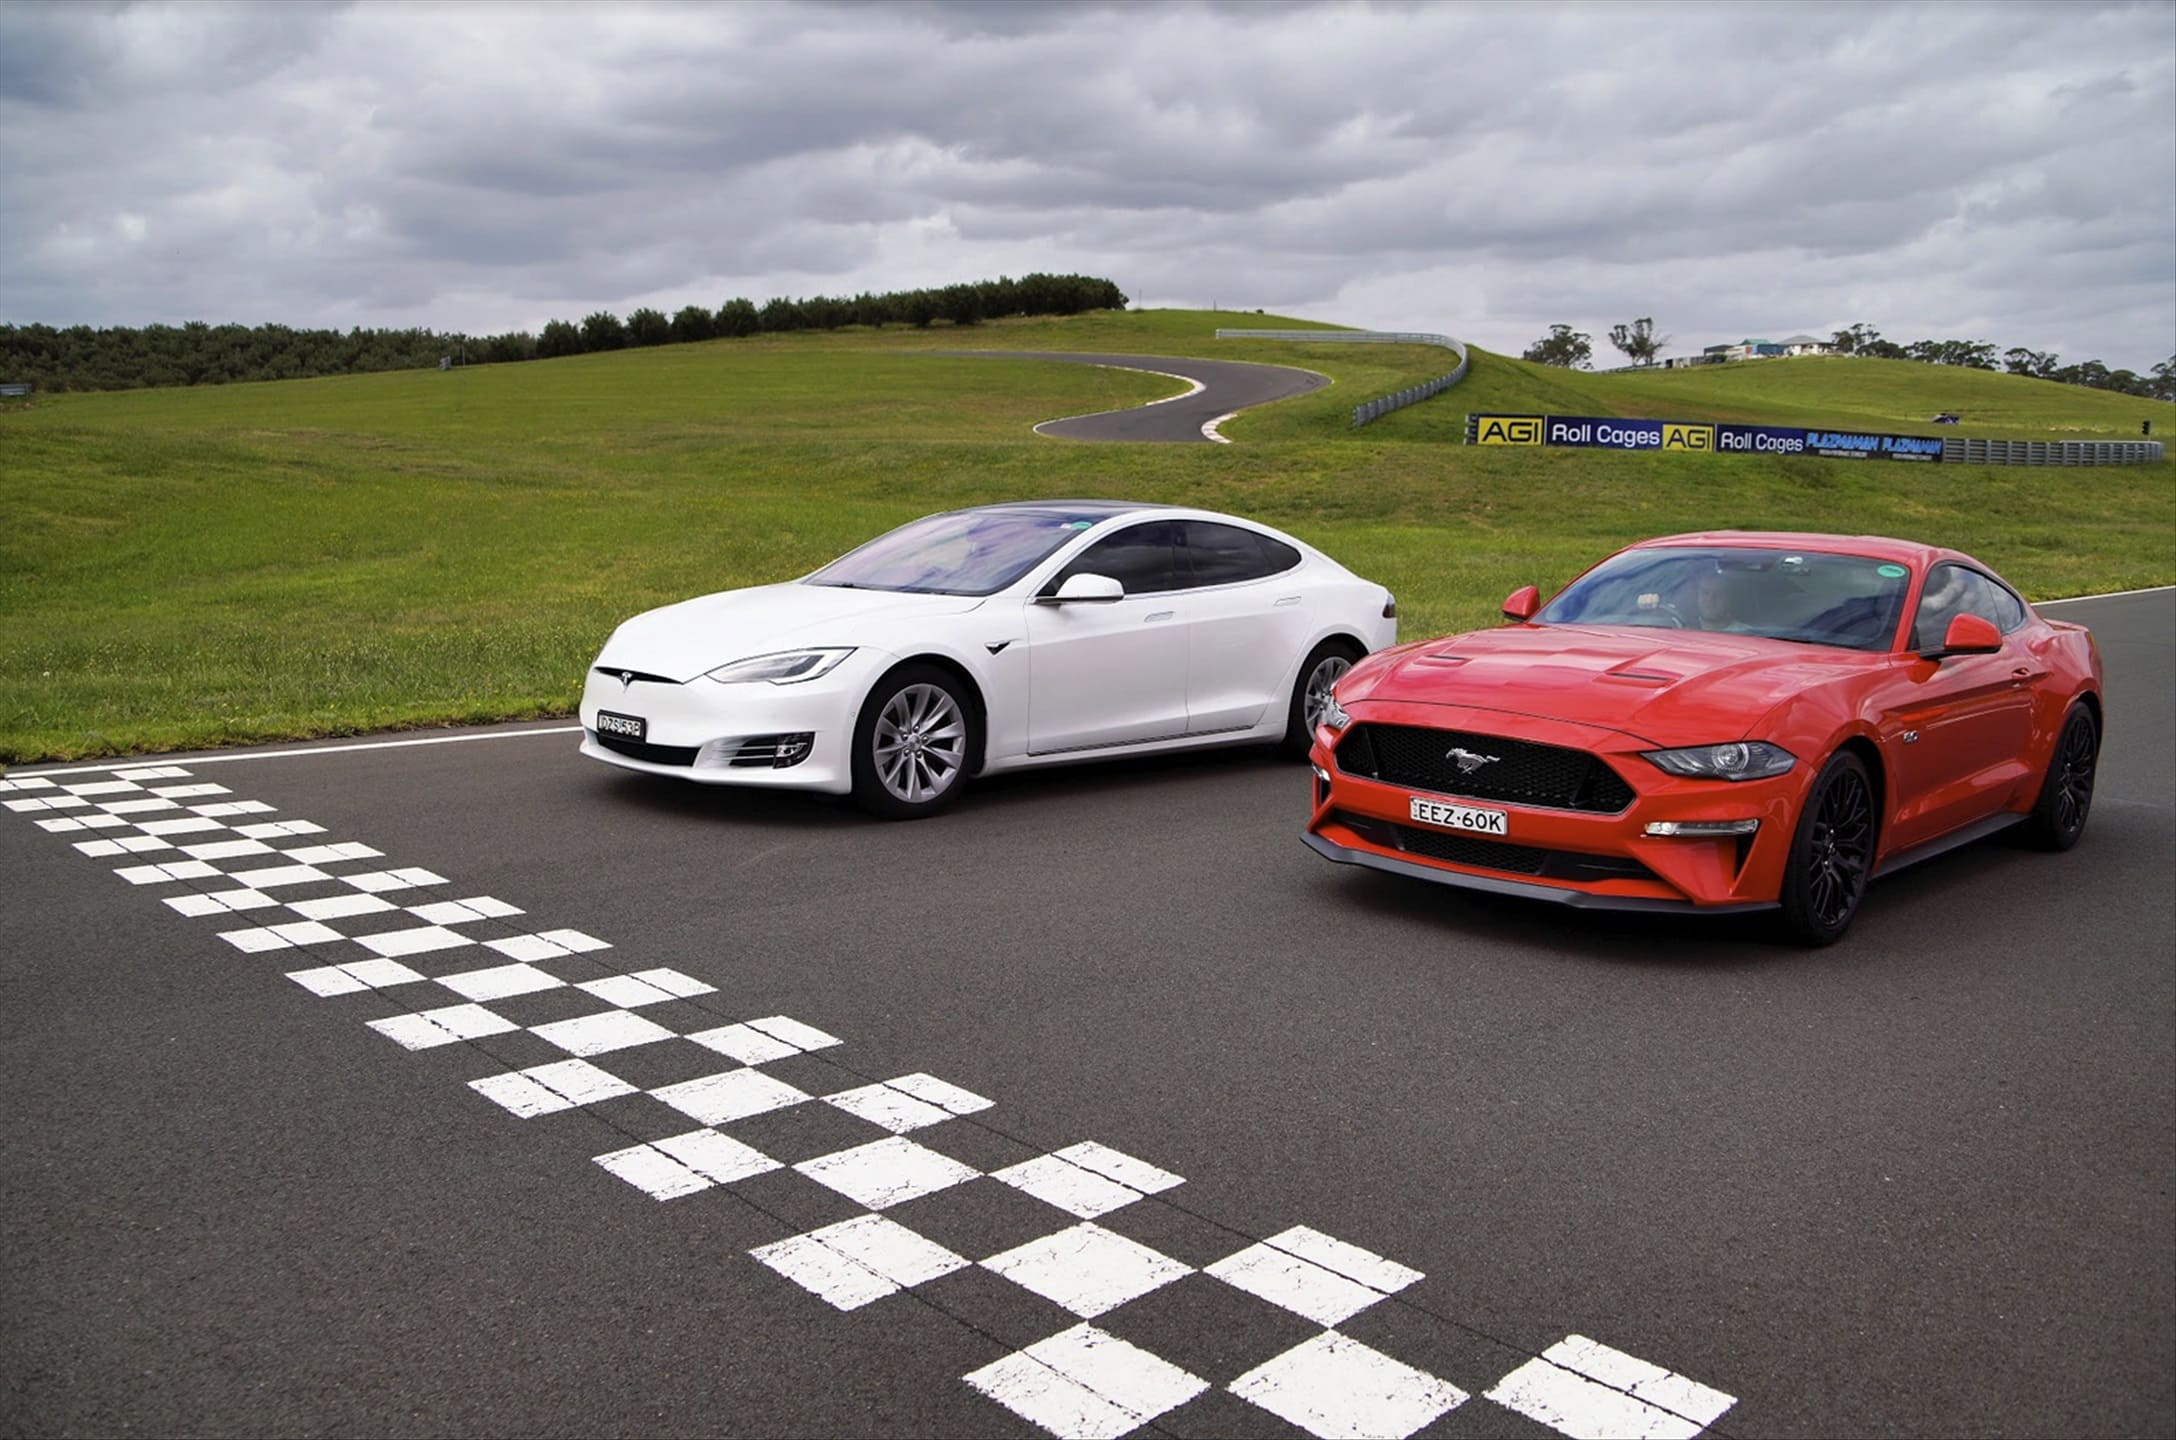 Tesla Model S vs Ford Mustang GT Drag Race – Who would win?